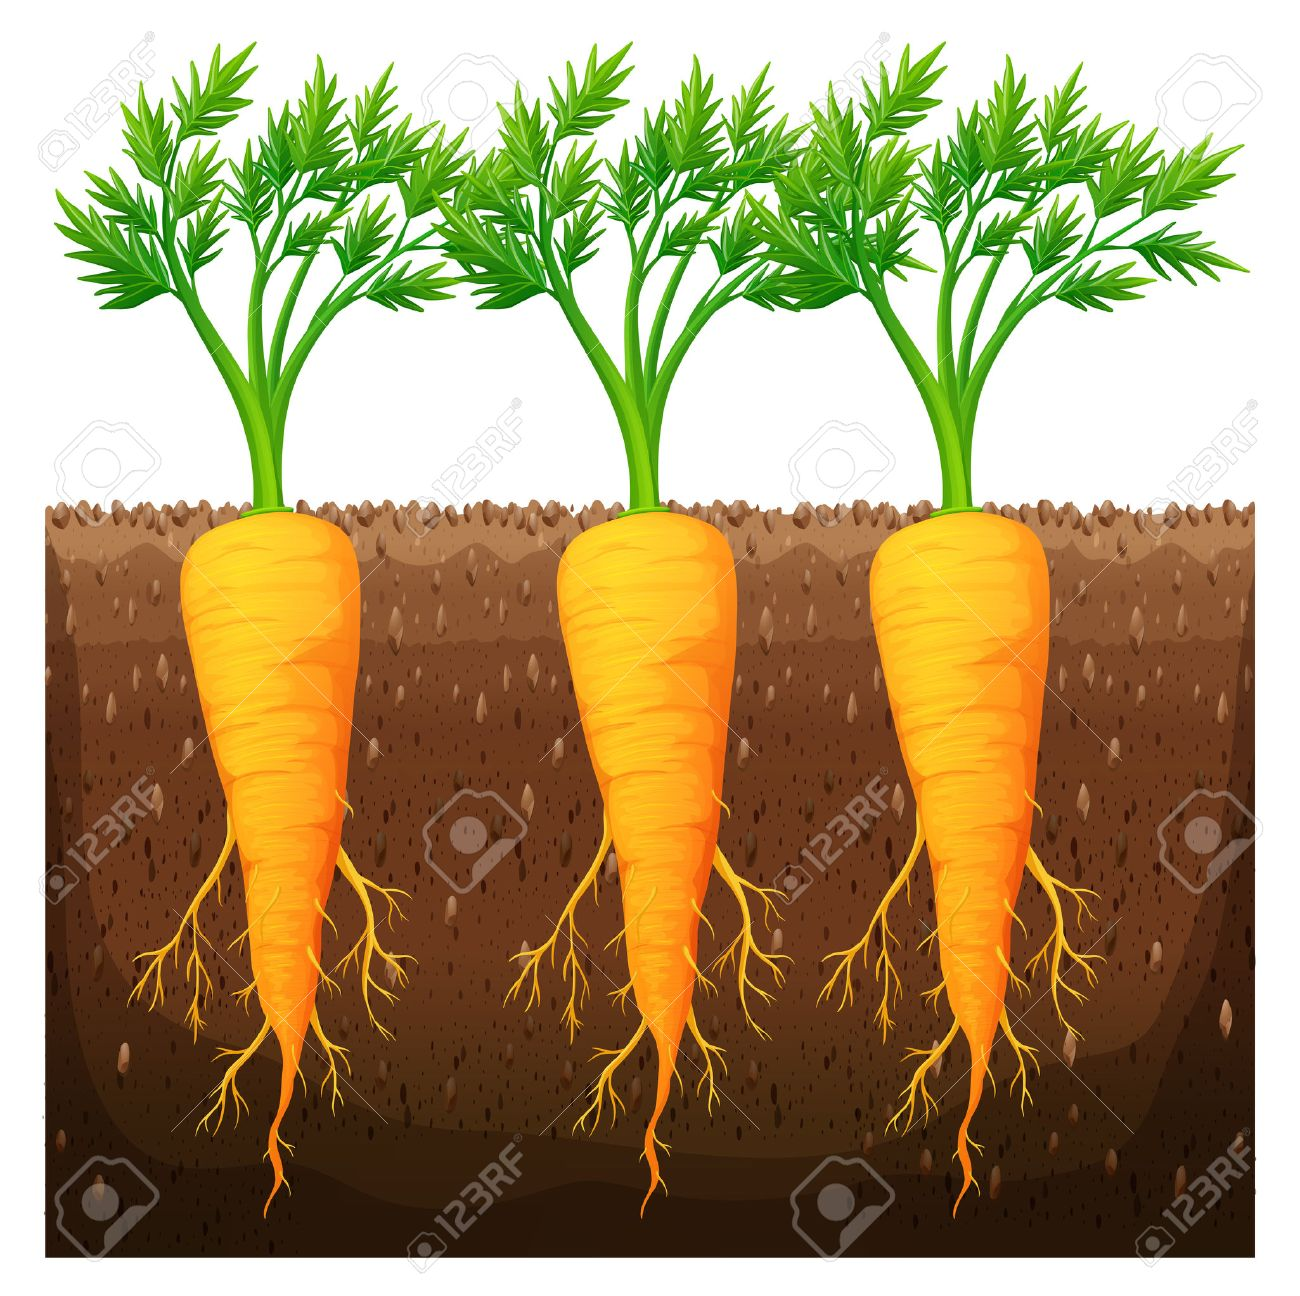 Fresh carrot growing in the field illustration.